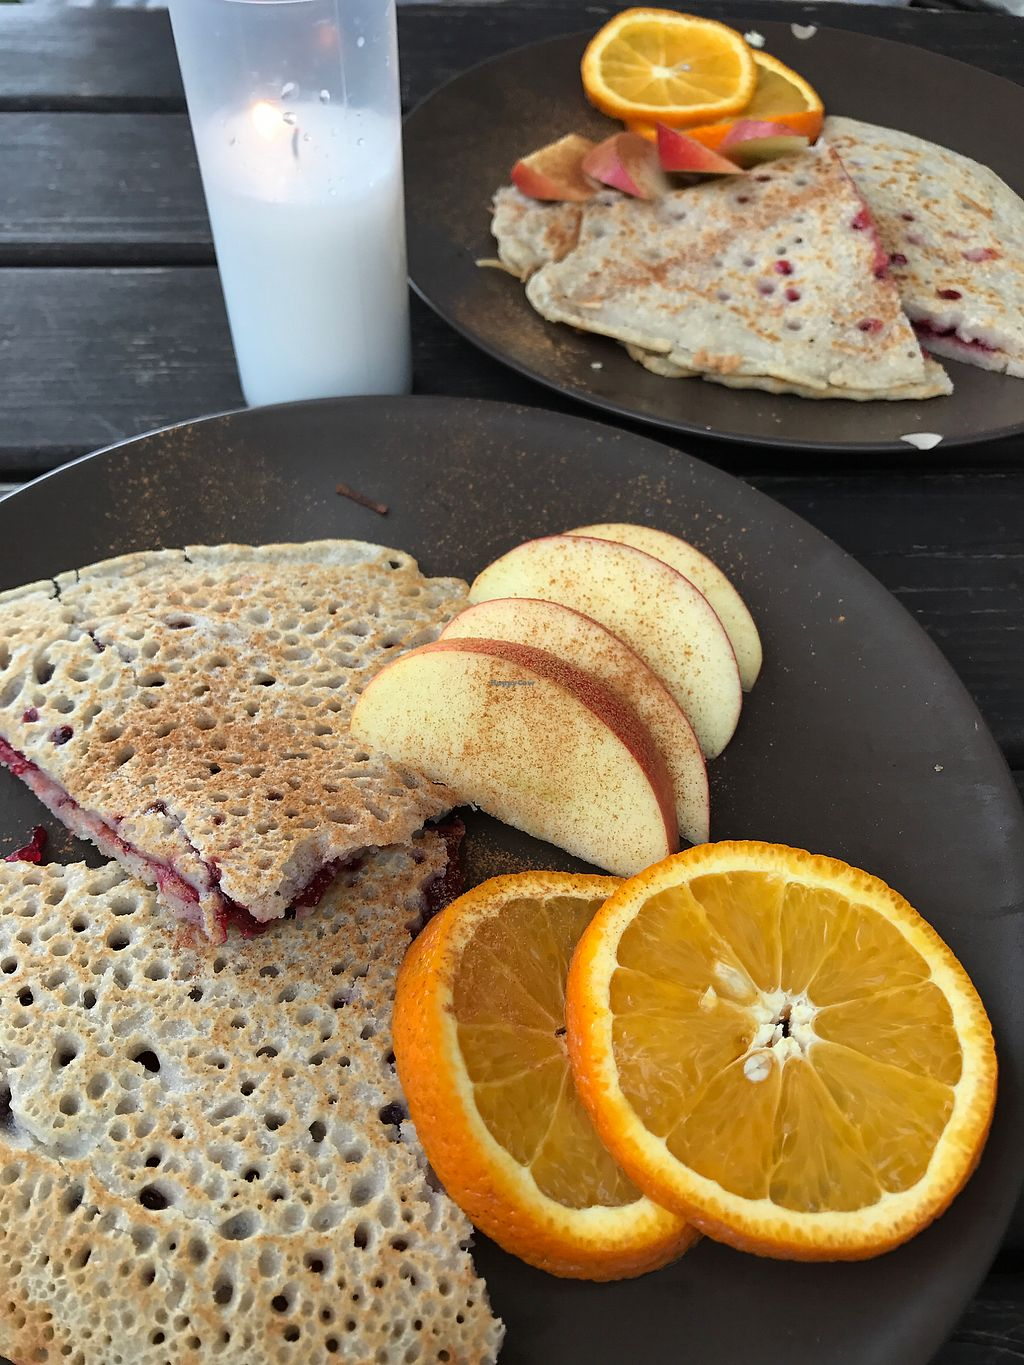 """Photo of Laibon  by <a href=""""/members/profile/AlasdairR"""">AlasdairR</a> <br/>birthday vegan pancakes !  <br/> July 16, 2017  - <a href='/contact/abuse/image/4420/281191'>Report</a>"""